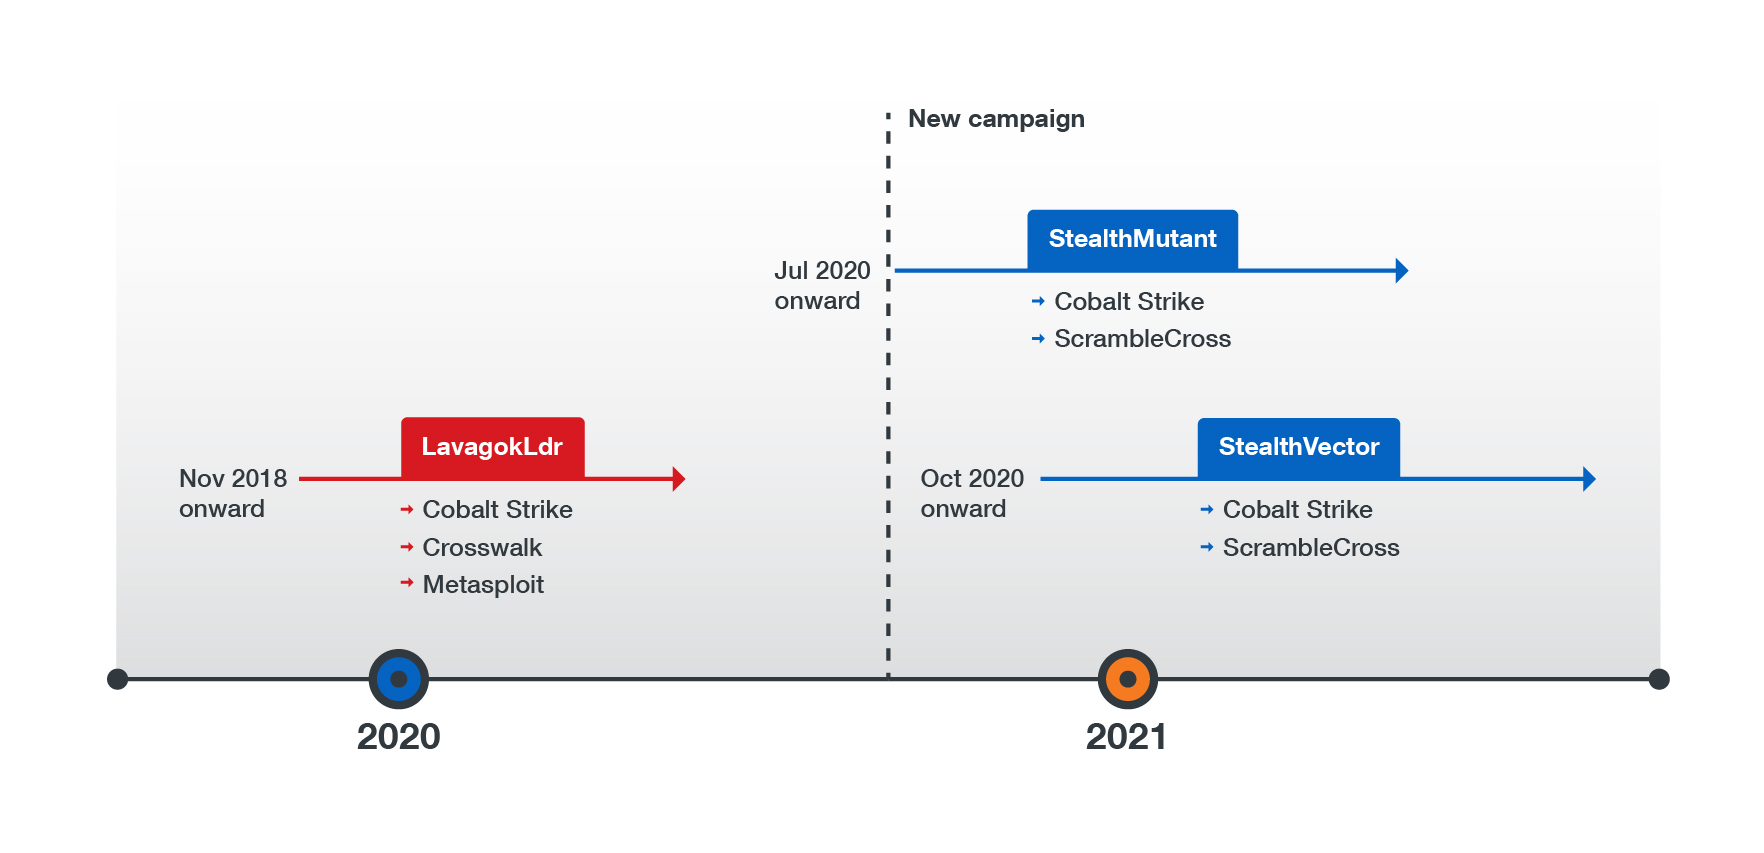 A timeline of Earth Baku's previous campaign and its new campaign